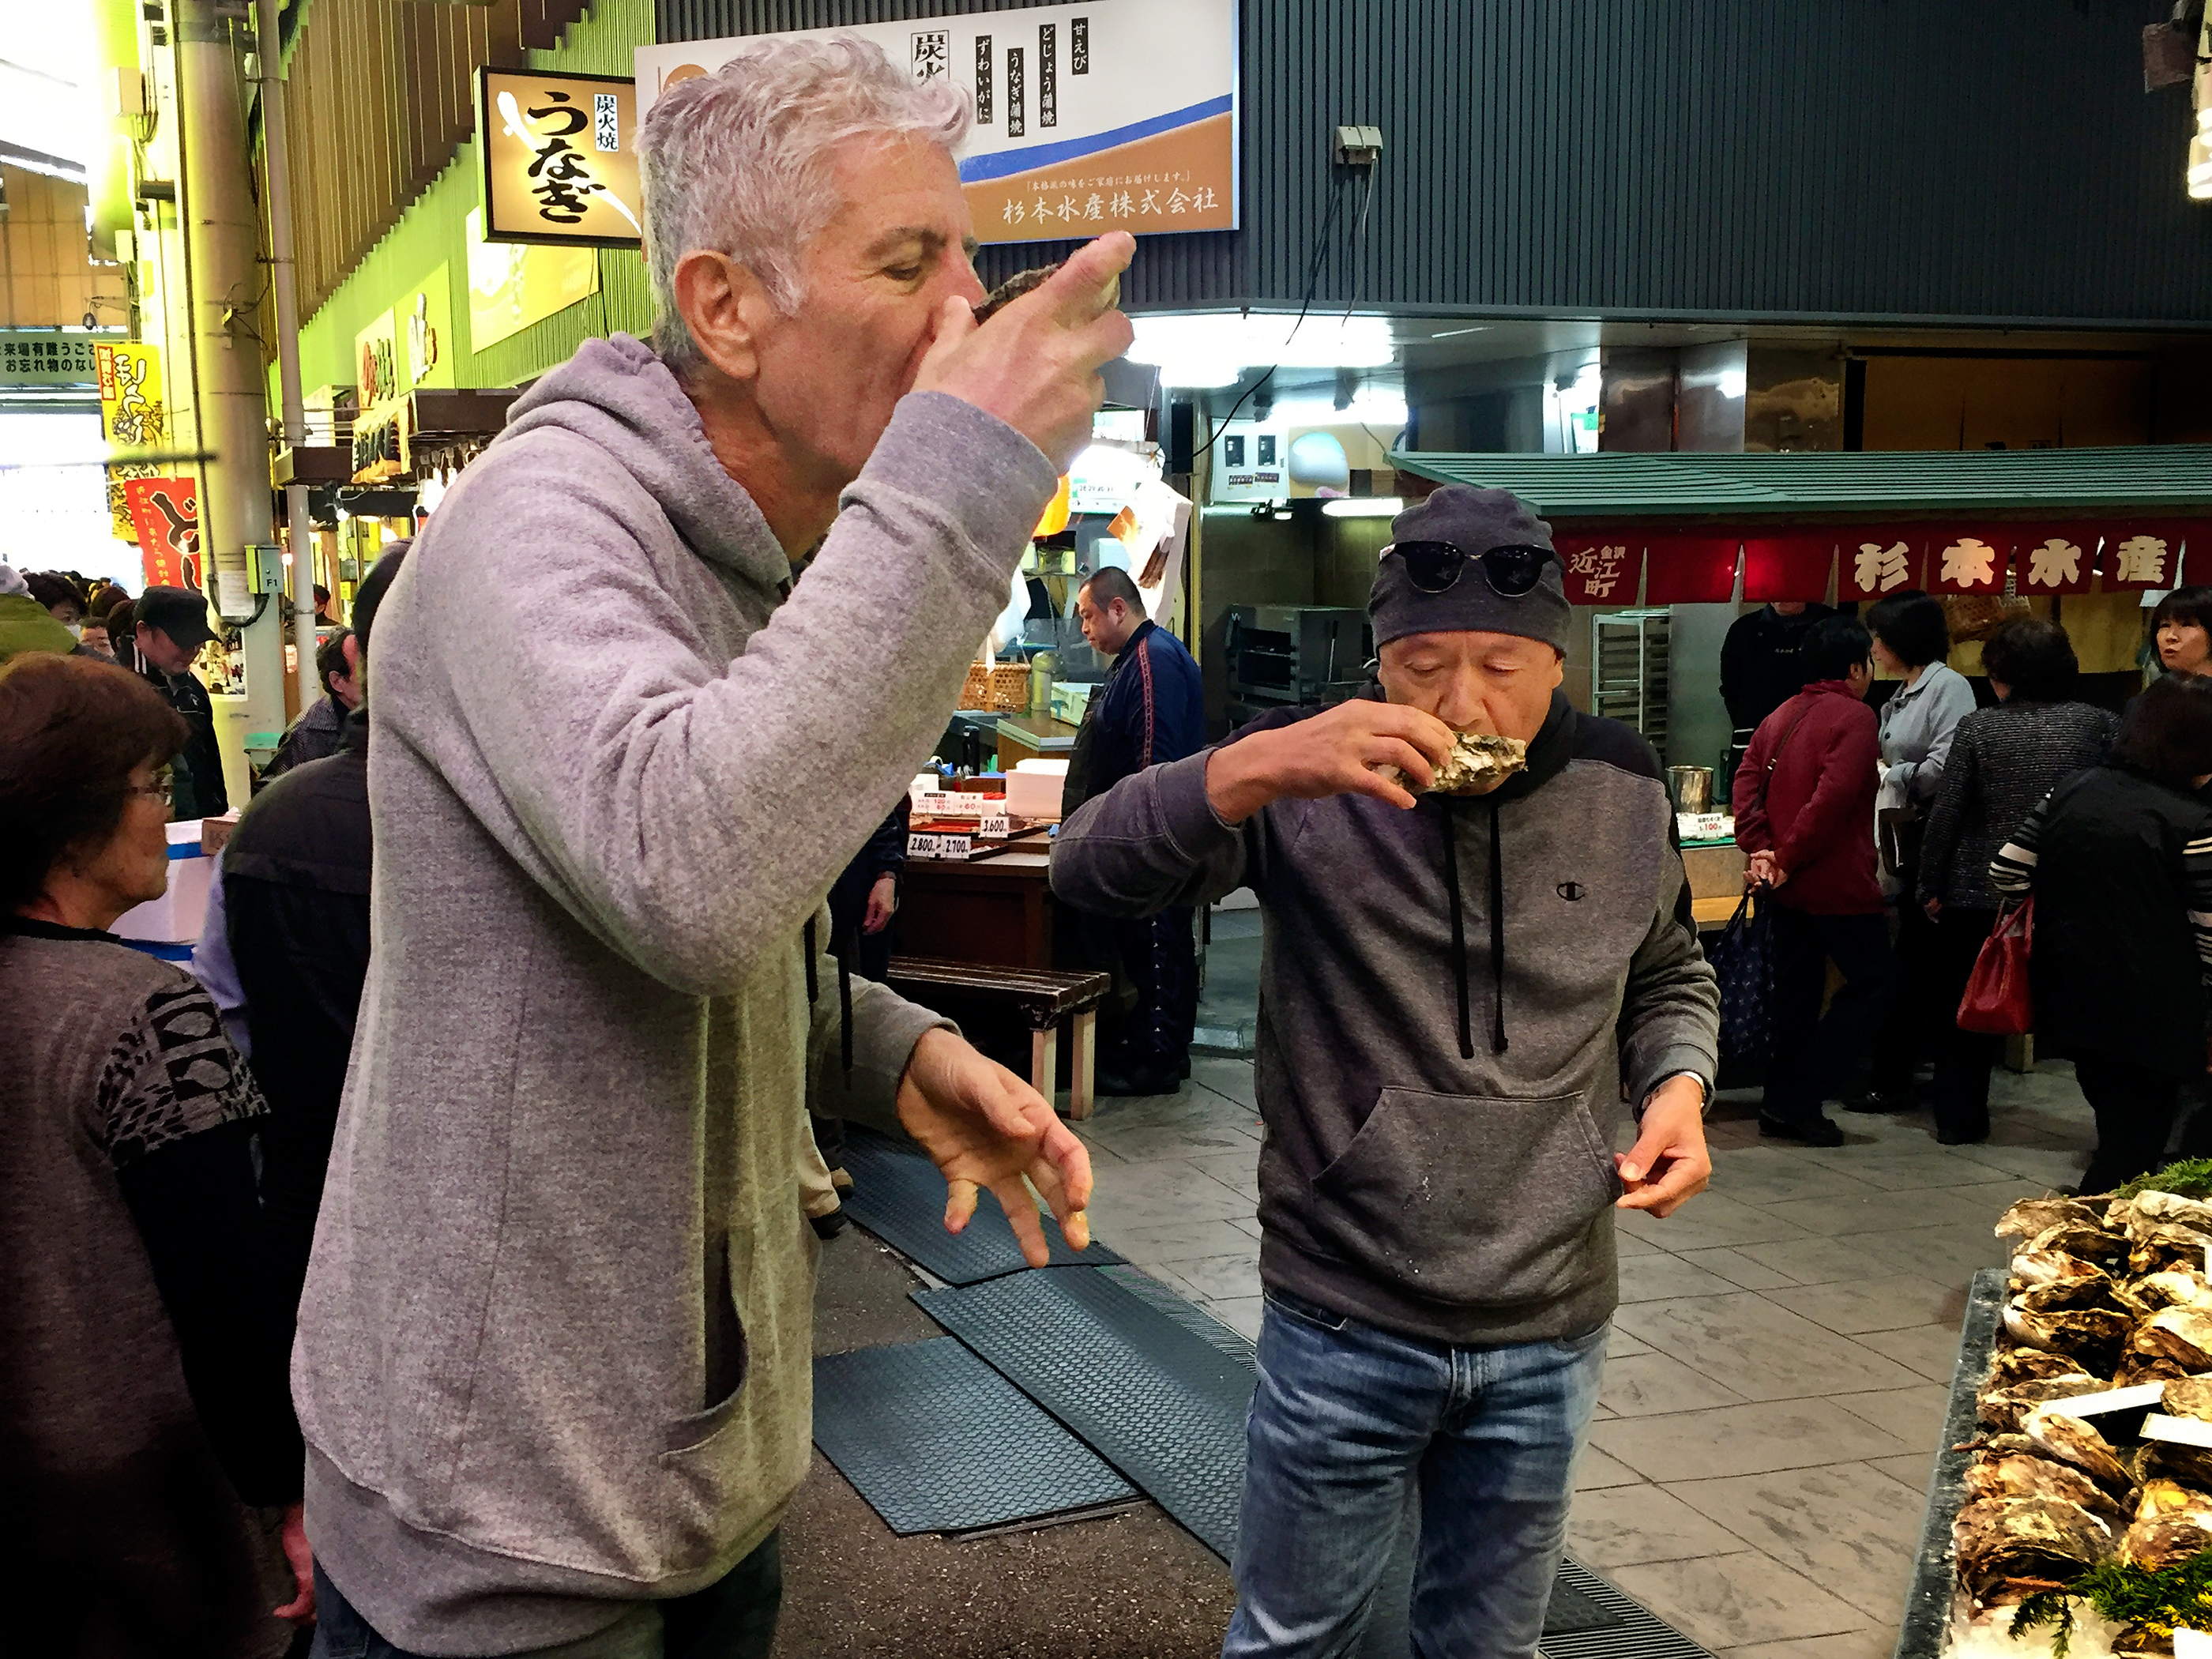 Anthony Bourdain and chef Masa Takayama sample oysters in the streets of Kanazawa, Japan.